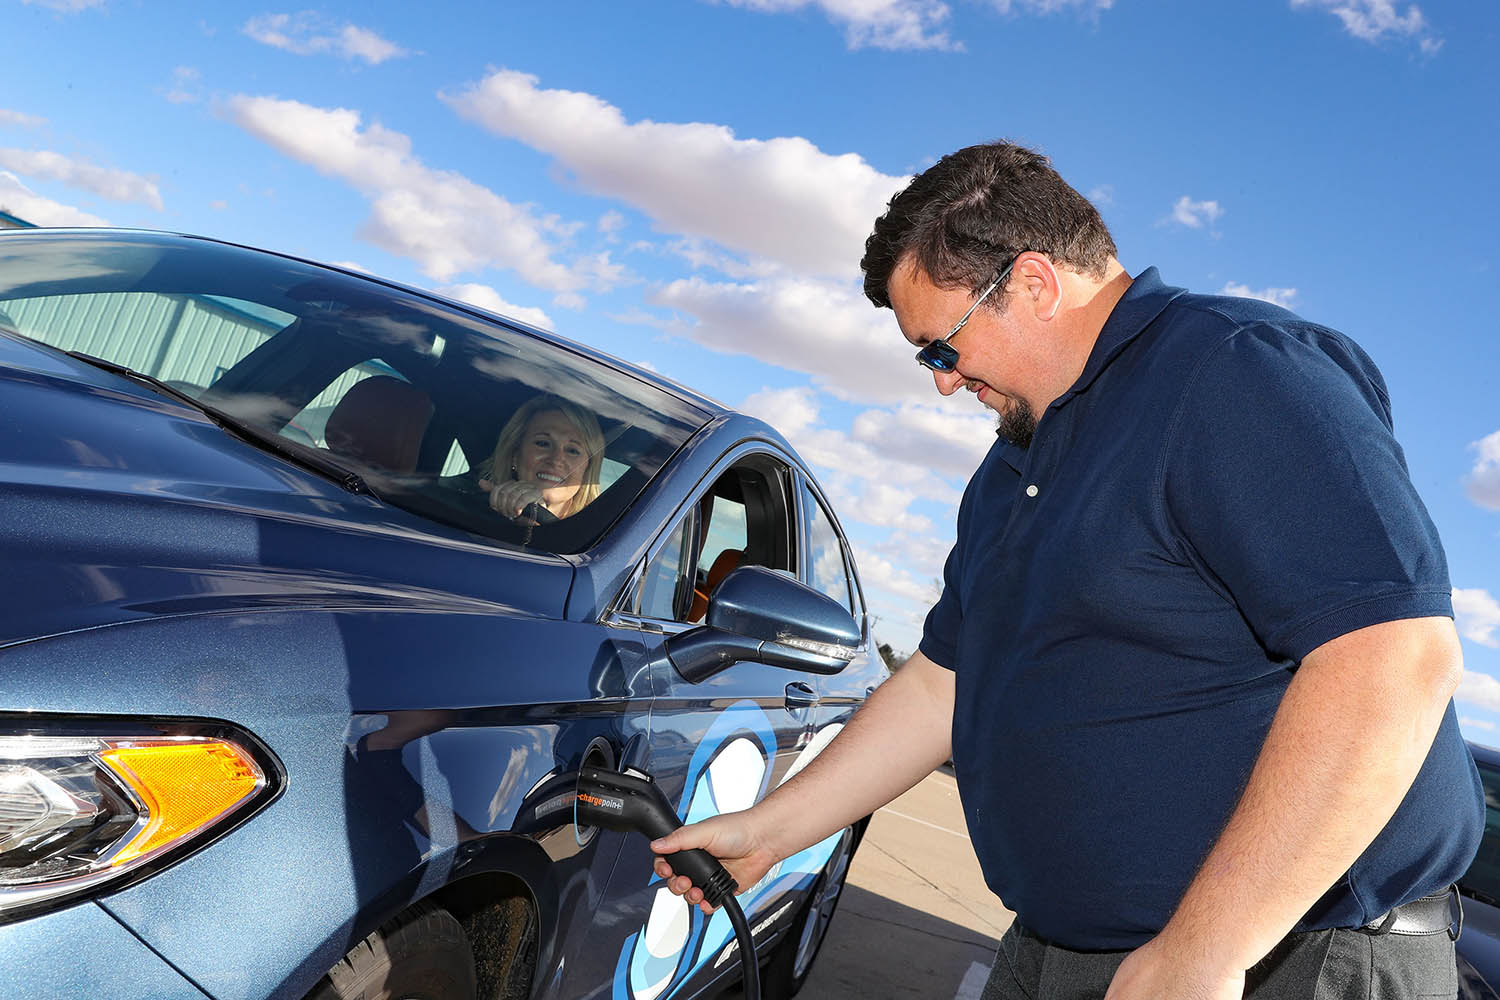 The Nebraska Safety Center now has an electric vehicle and charging station that will be used for its driver education program. (Photos by Corbey R. Dorsey, UNK Communications)